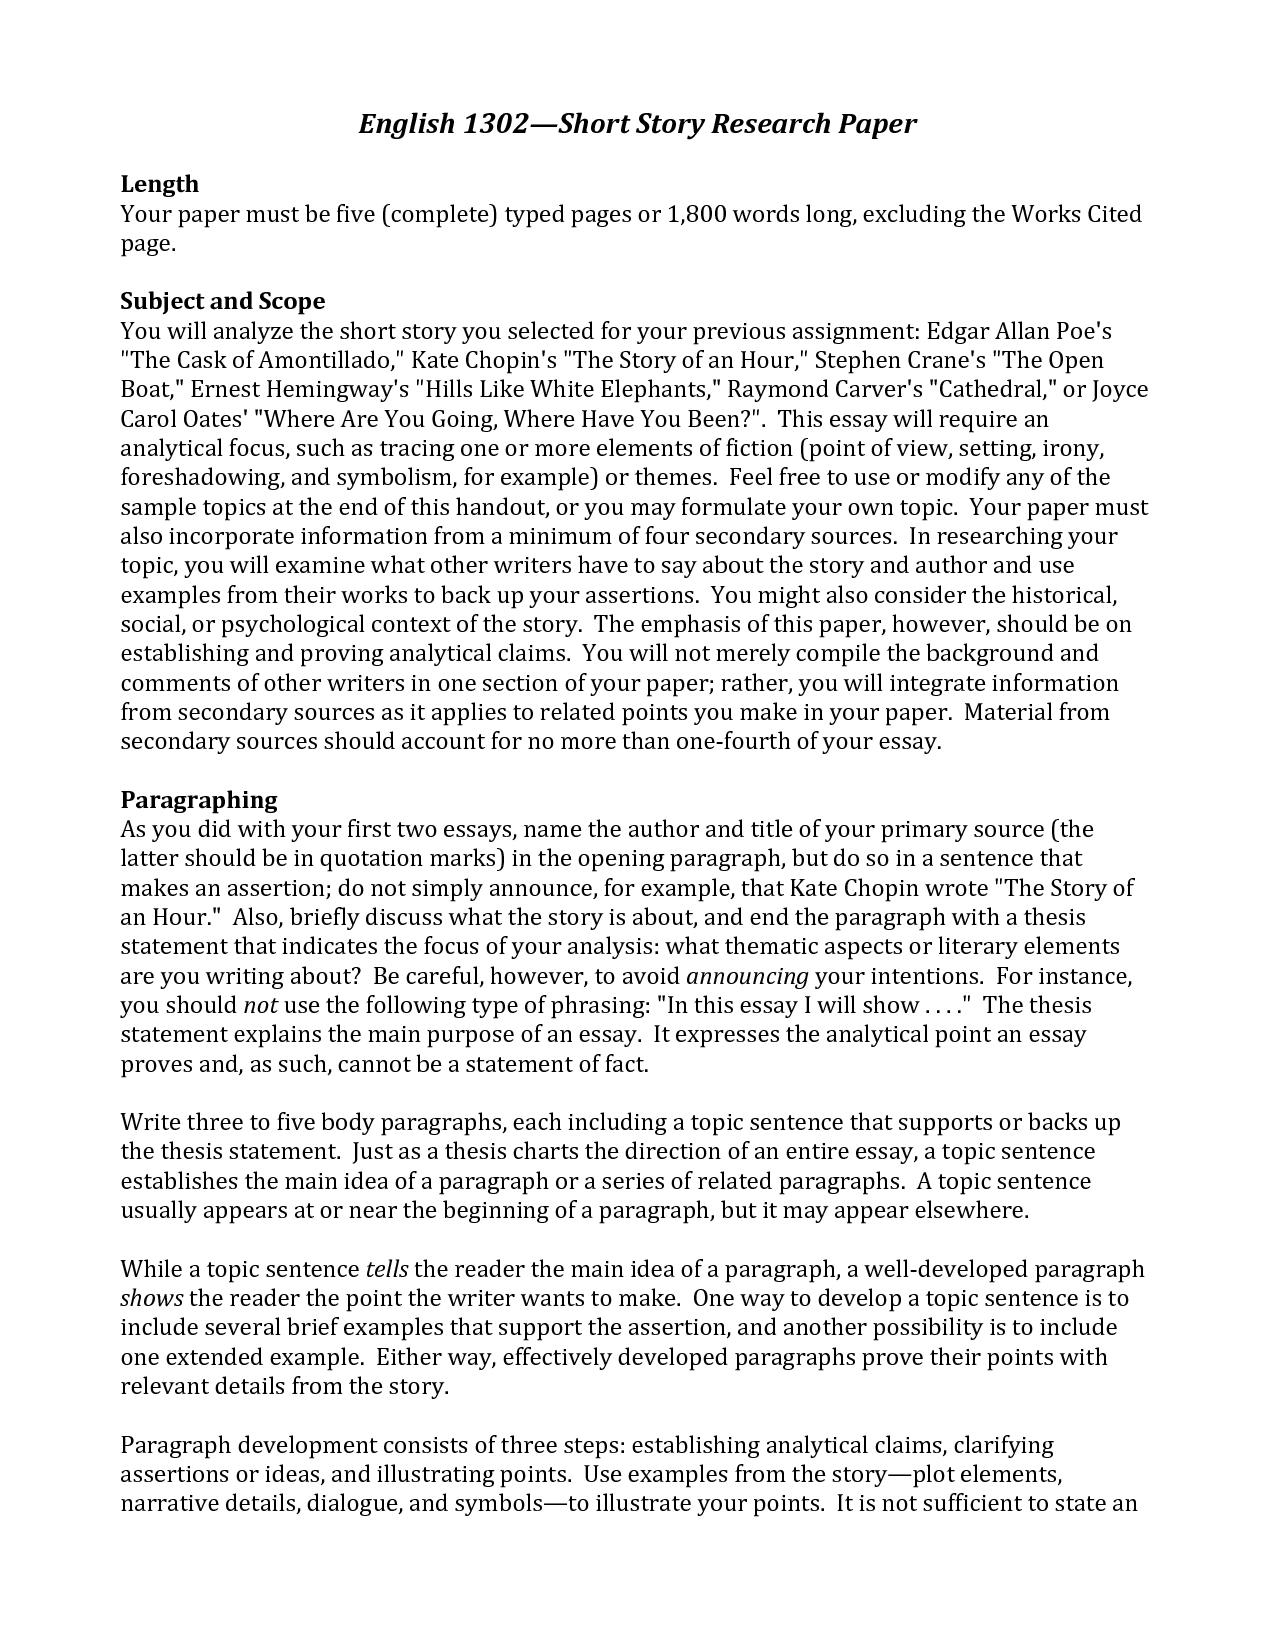 002 Ideas For Research Fascinating Paper Papers In Computer Science Middle School Full